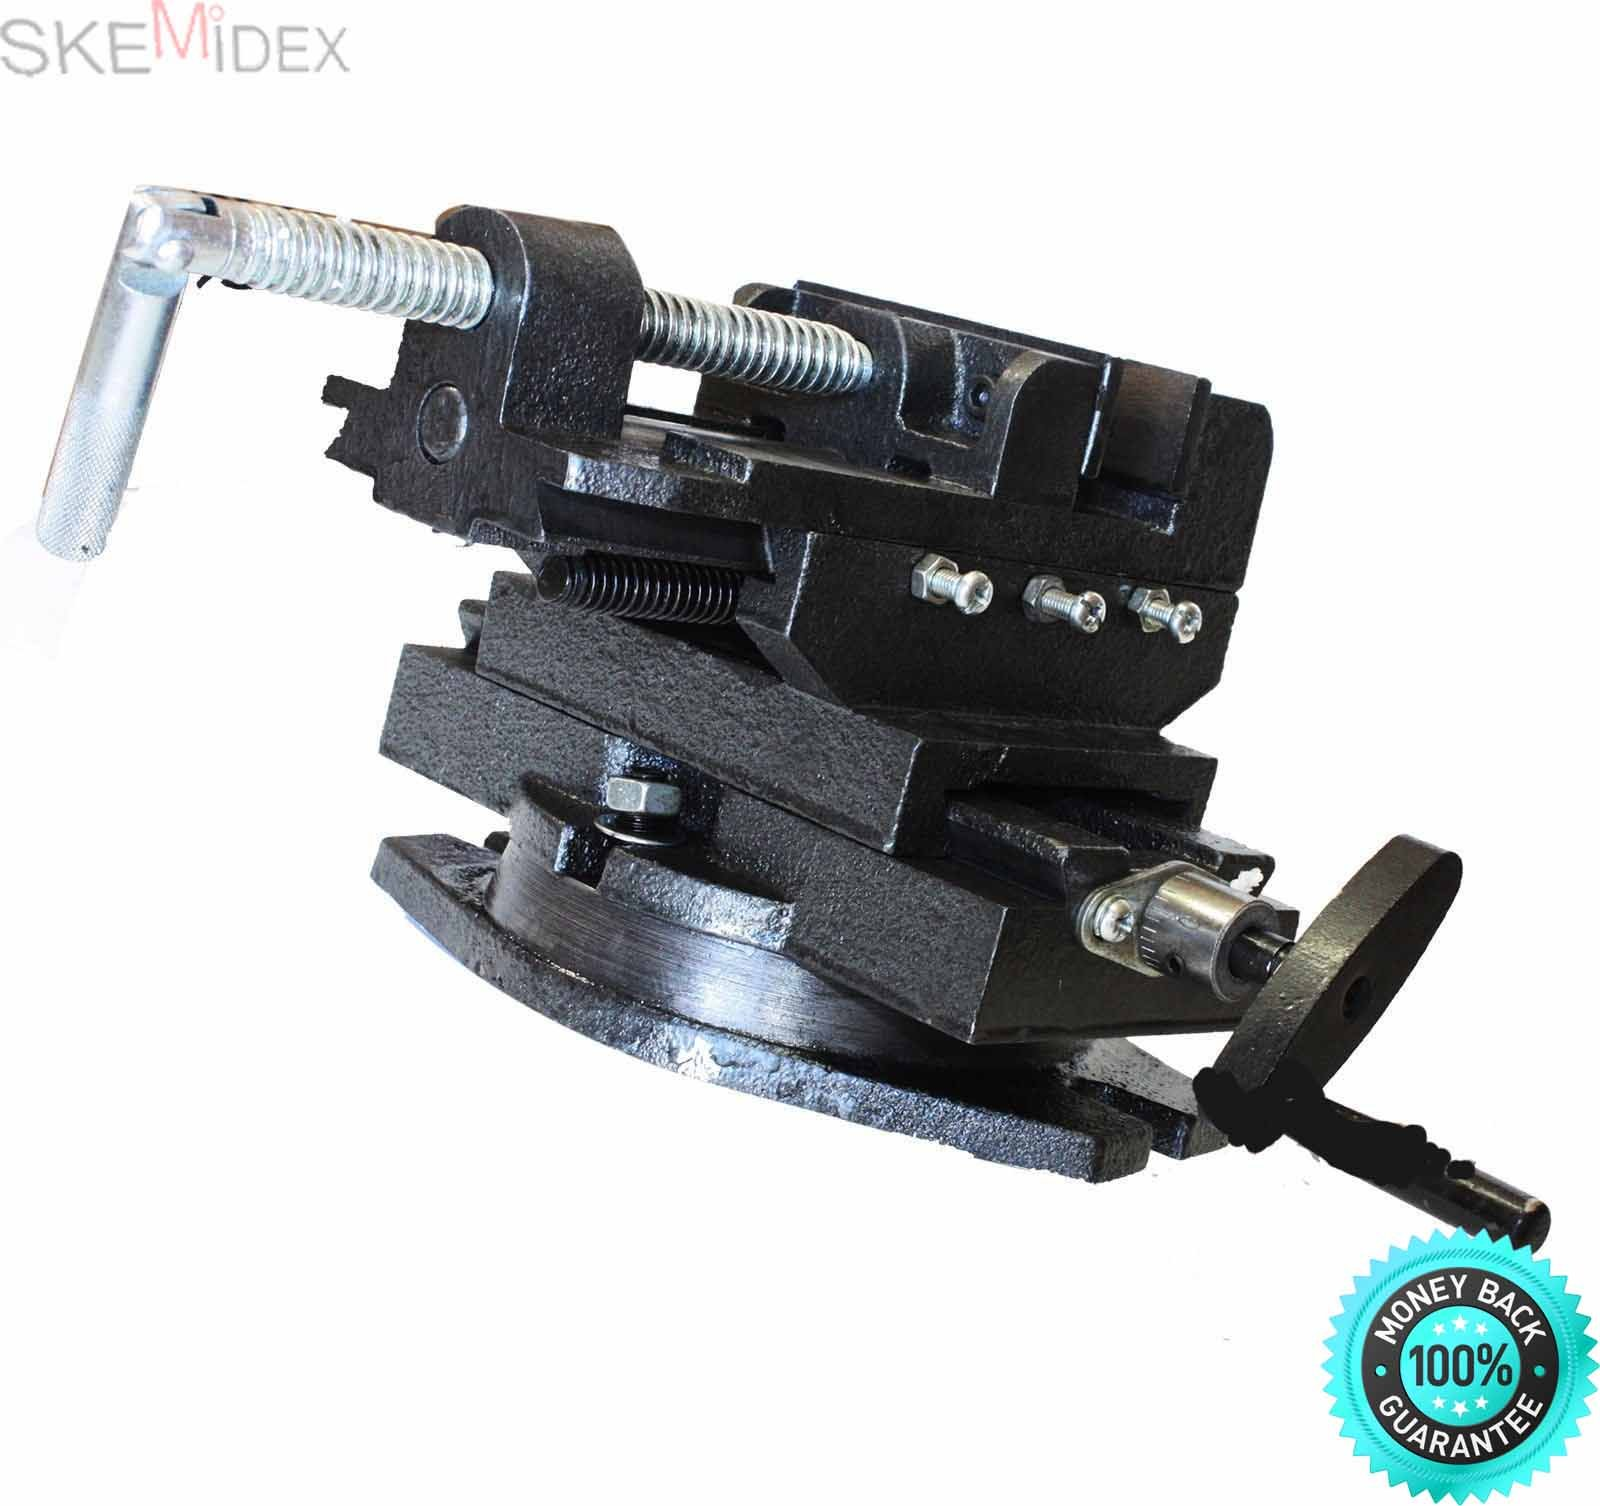 SKEMiDEX--- New HD 4'' Swivel 360 Deg Drill Press Vise Bench X Y Clamp Cross Slide Milling Features Provides Quick And Precise Positioning Along The X And Y Axis, Giving Drill Press Movements And Posit